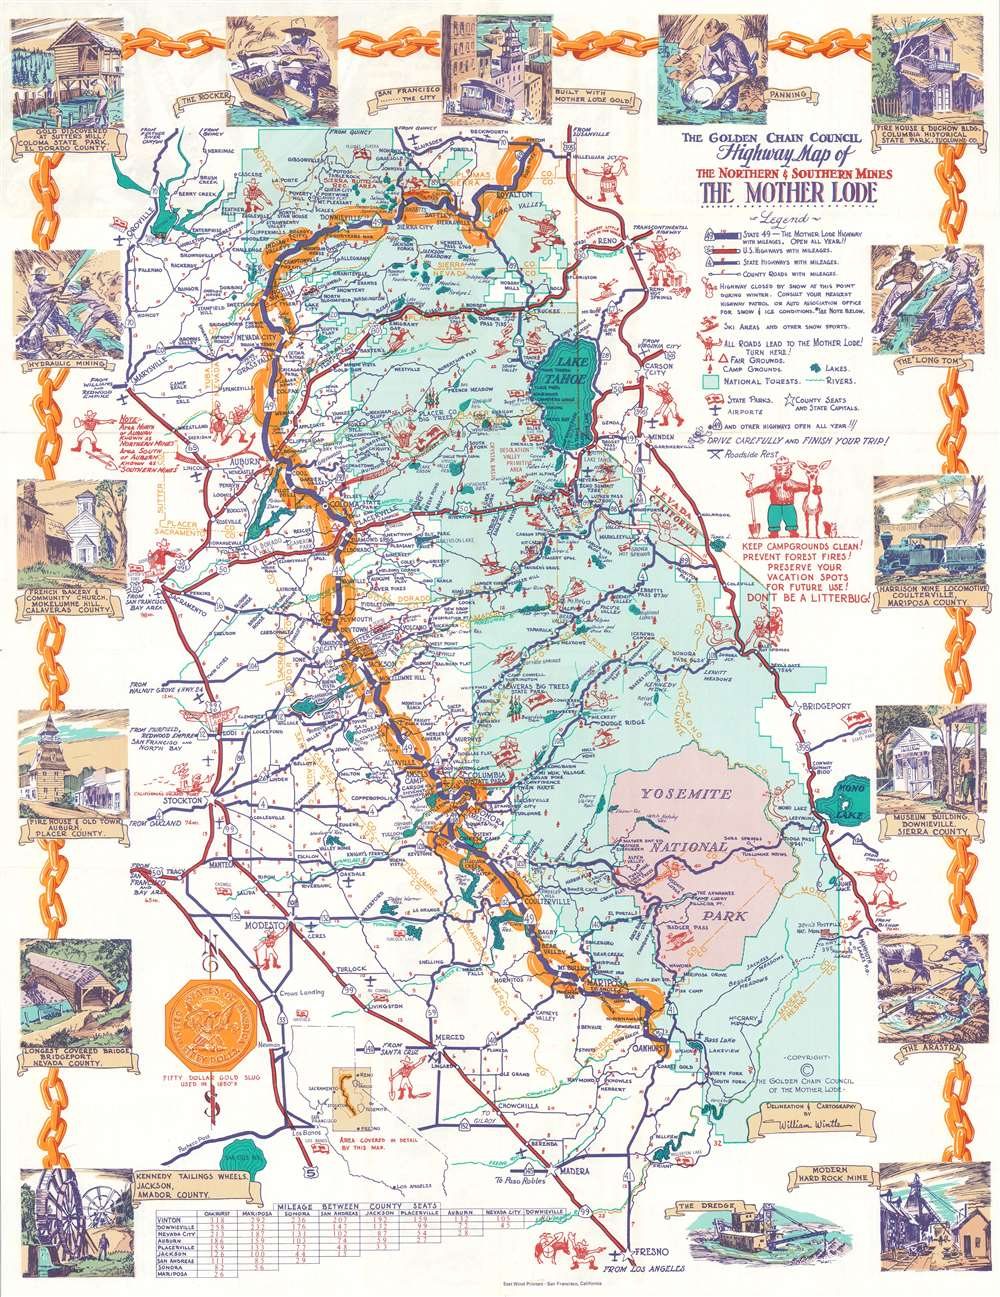 1960 Wintle Pictorial Tourist Map of the Mother Lode Gold Region, California